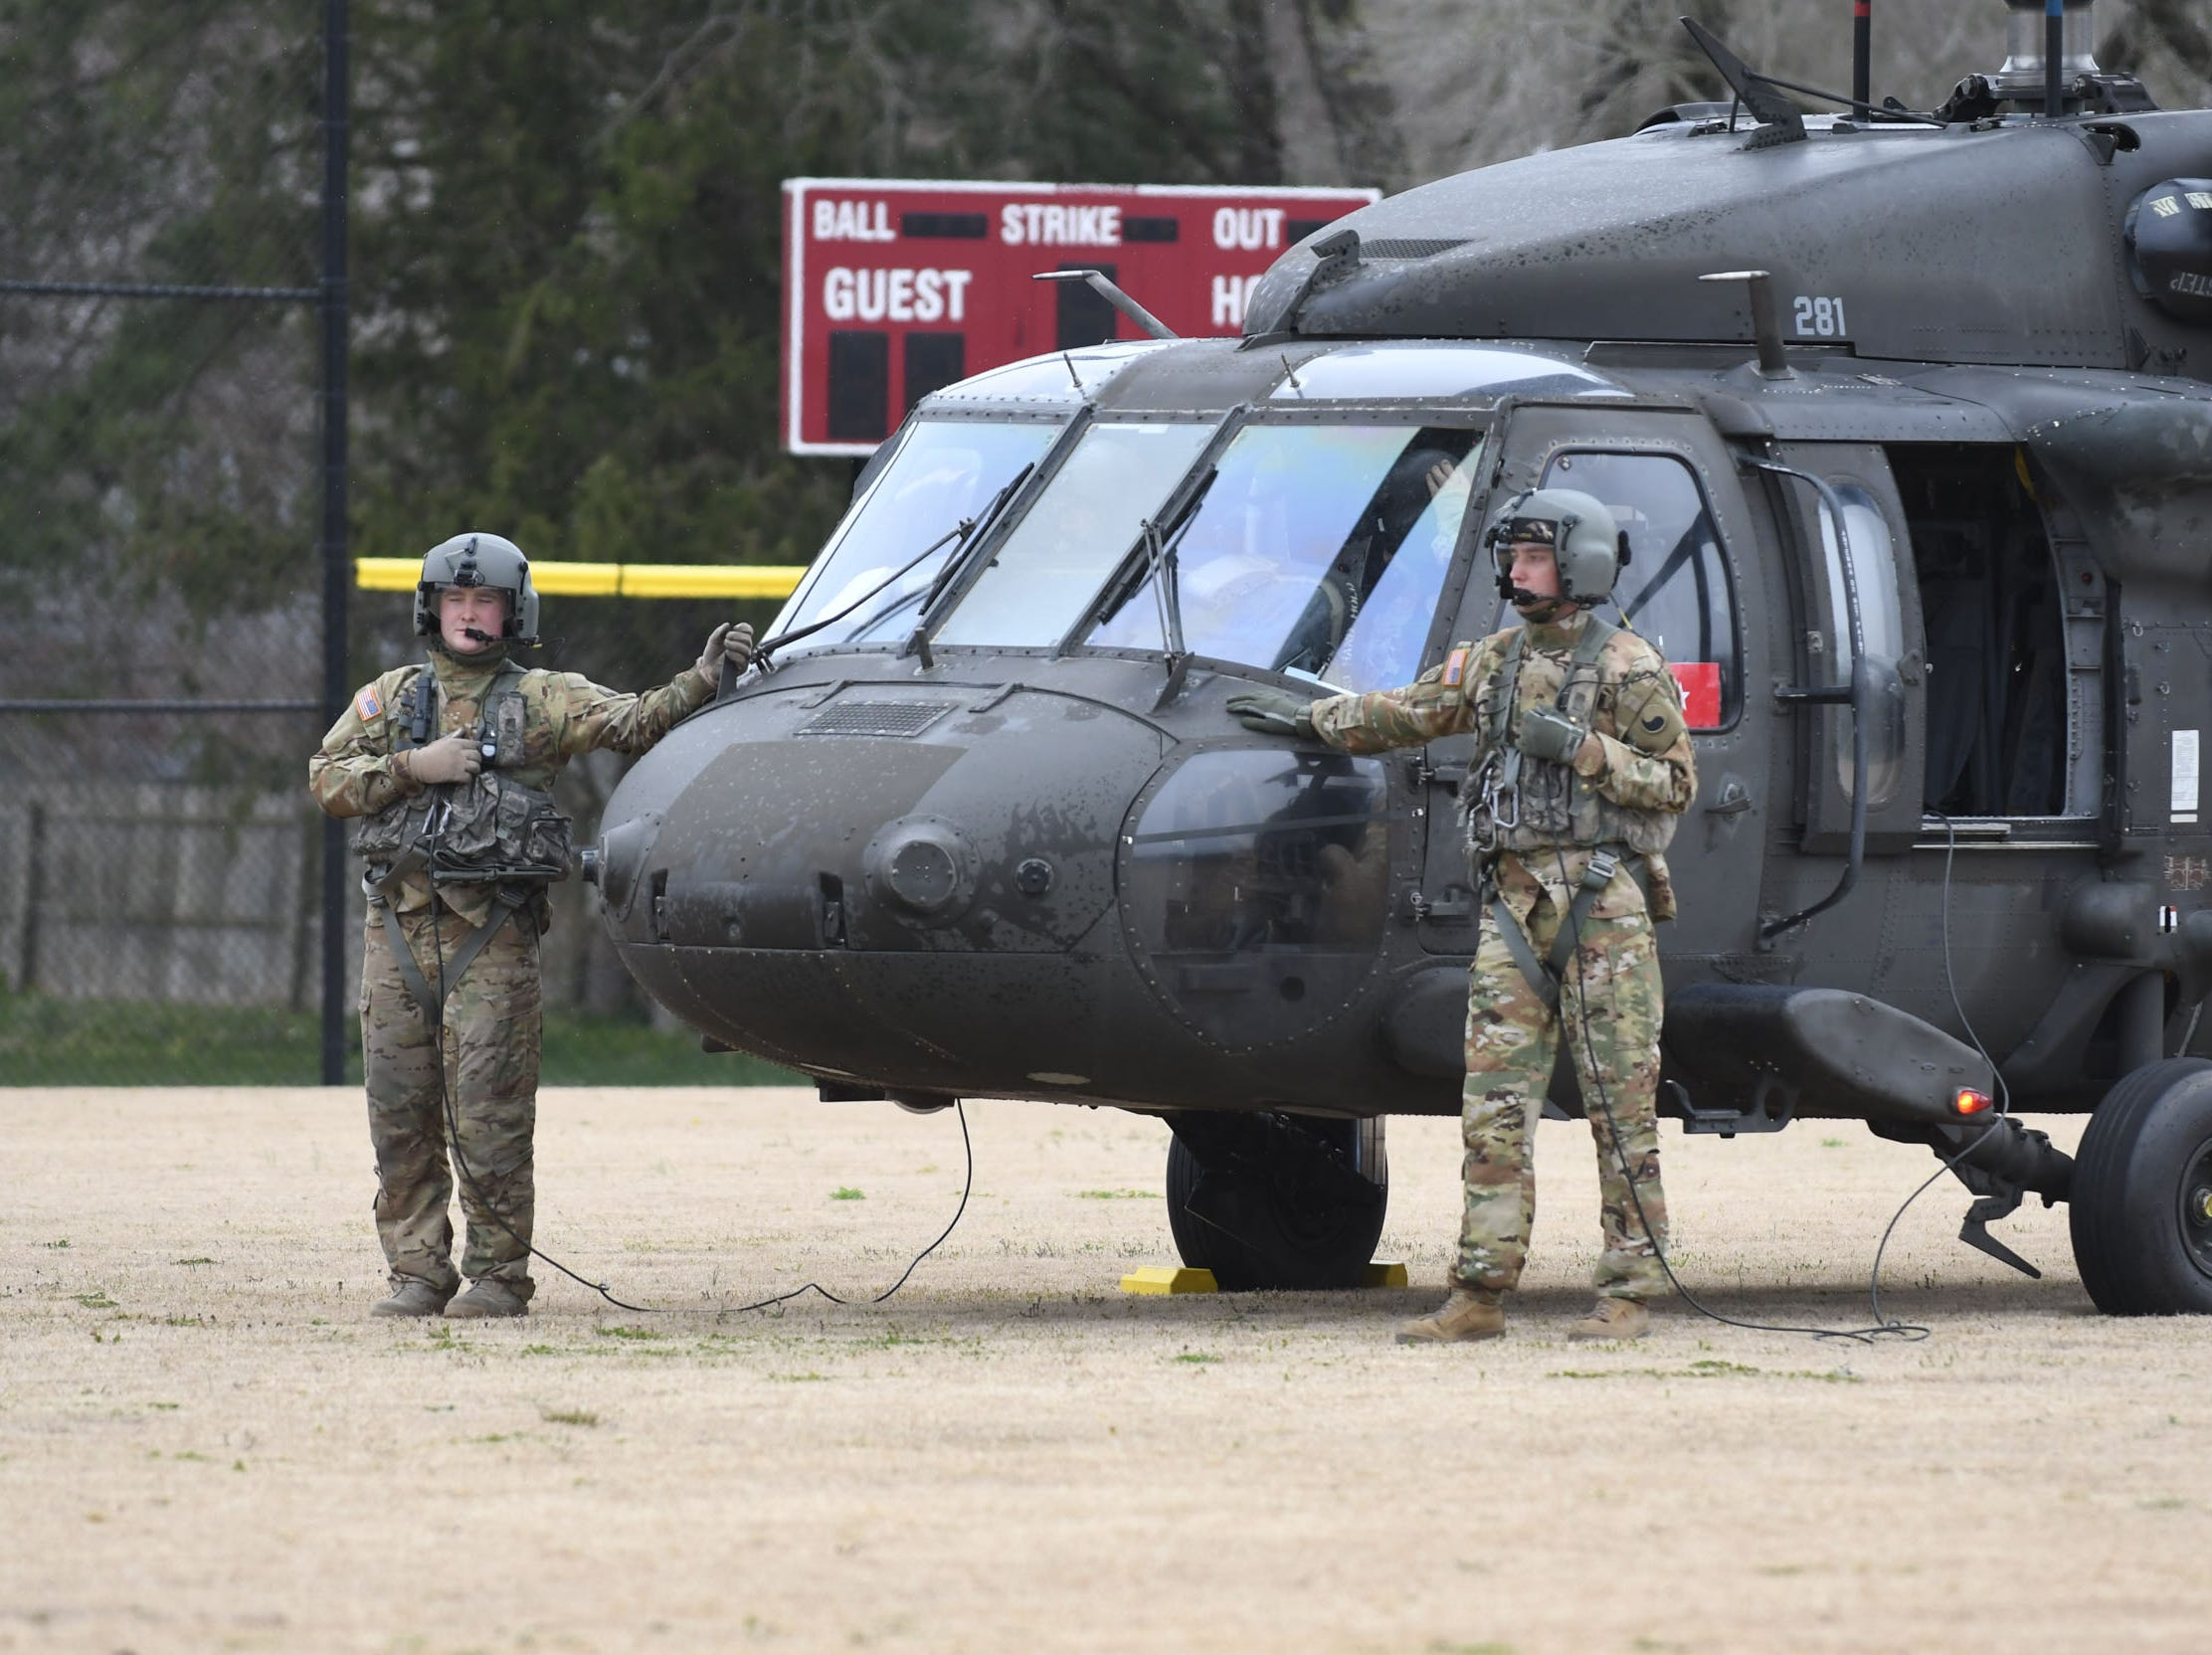 Snow Hill Alumni General Janeen Birckhead and her team landed on the Snow Hill High School baseball field in a  UH60 Black Hawk helicopter. General Birckhead and her team of leaders spoke with the students about leadership and making good decisions on Friday, April 5, 2019.